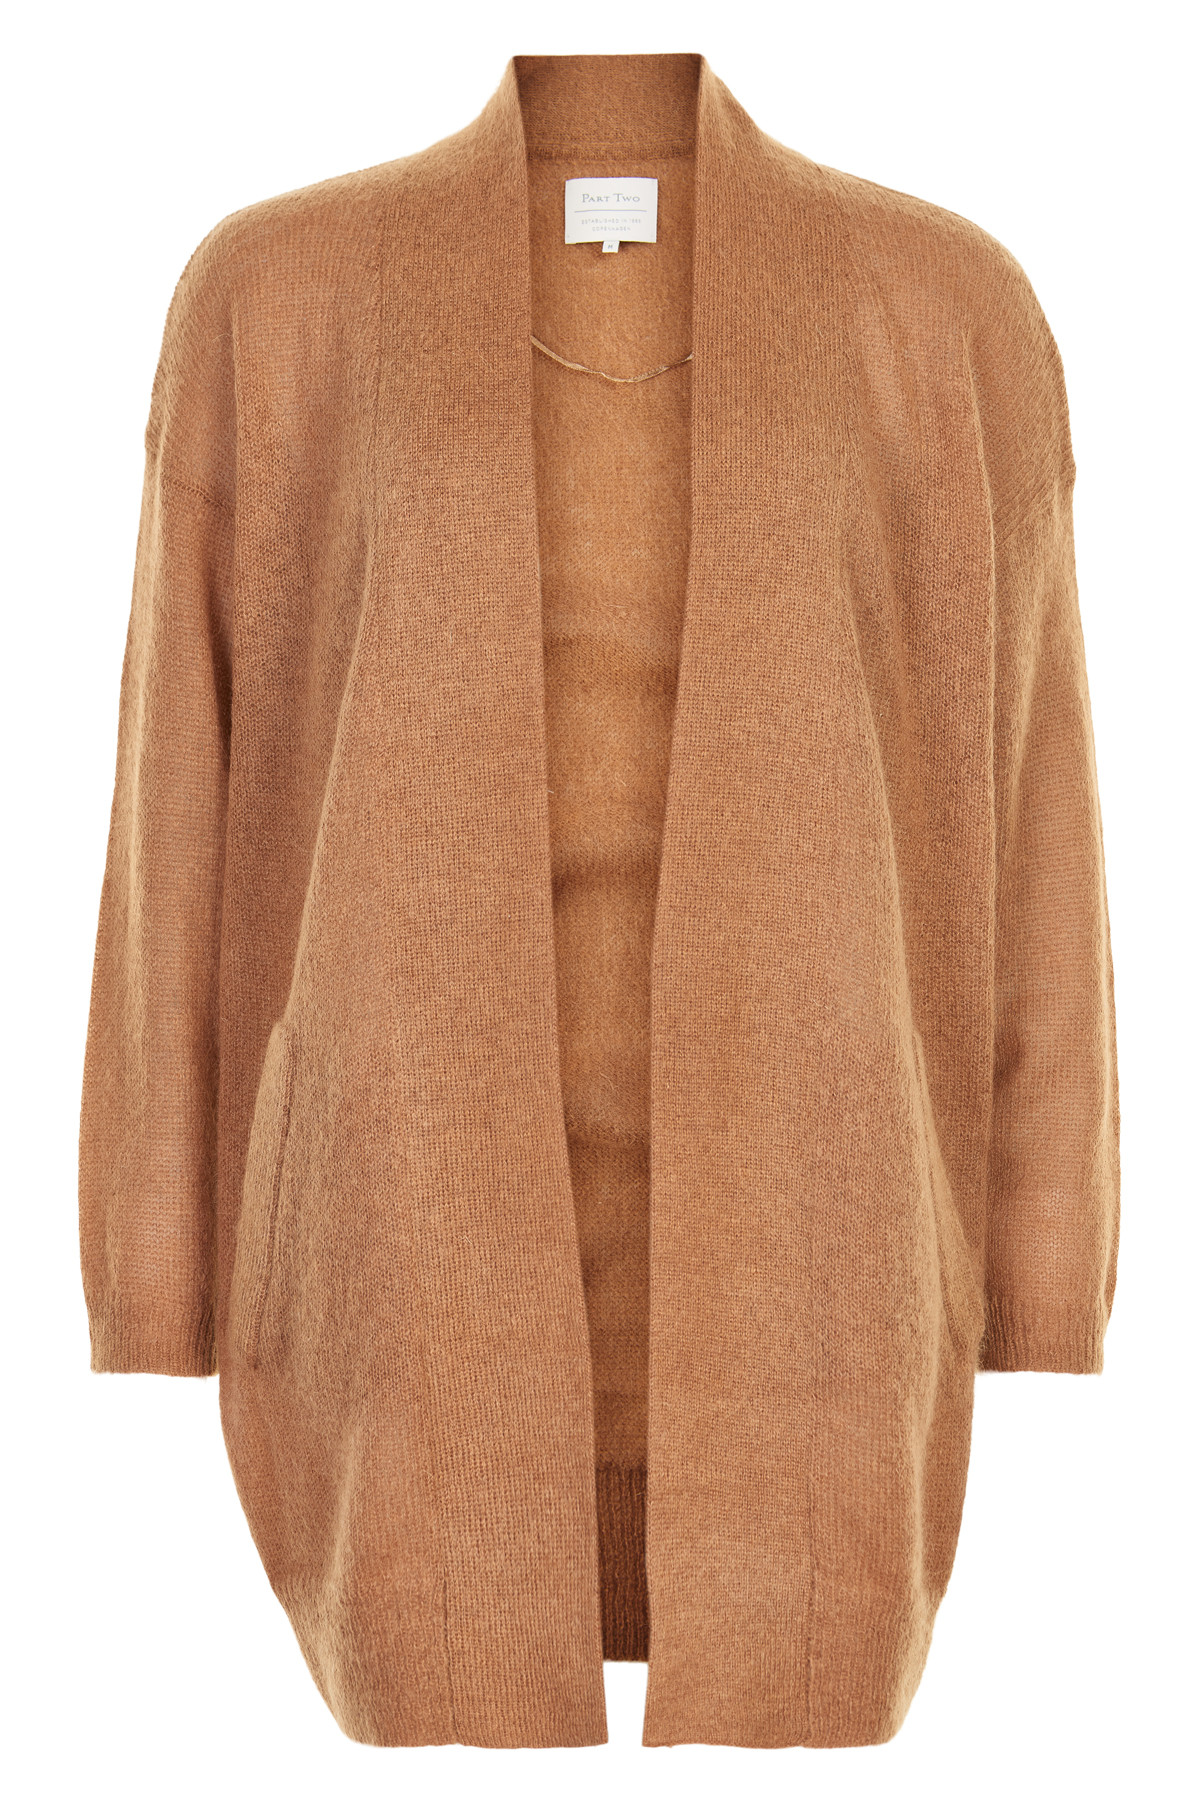 Image of   PART TWO TYLER CARDIGAN 30304435 T (Tobacco Brown 33163, XL)